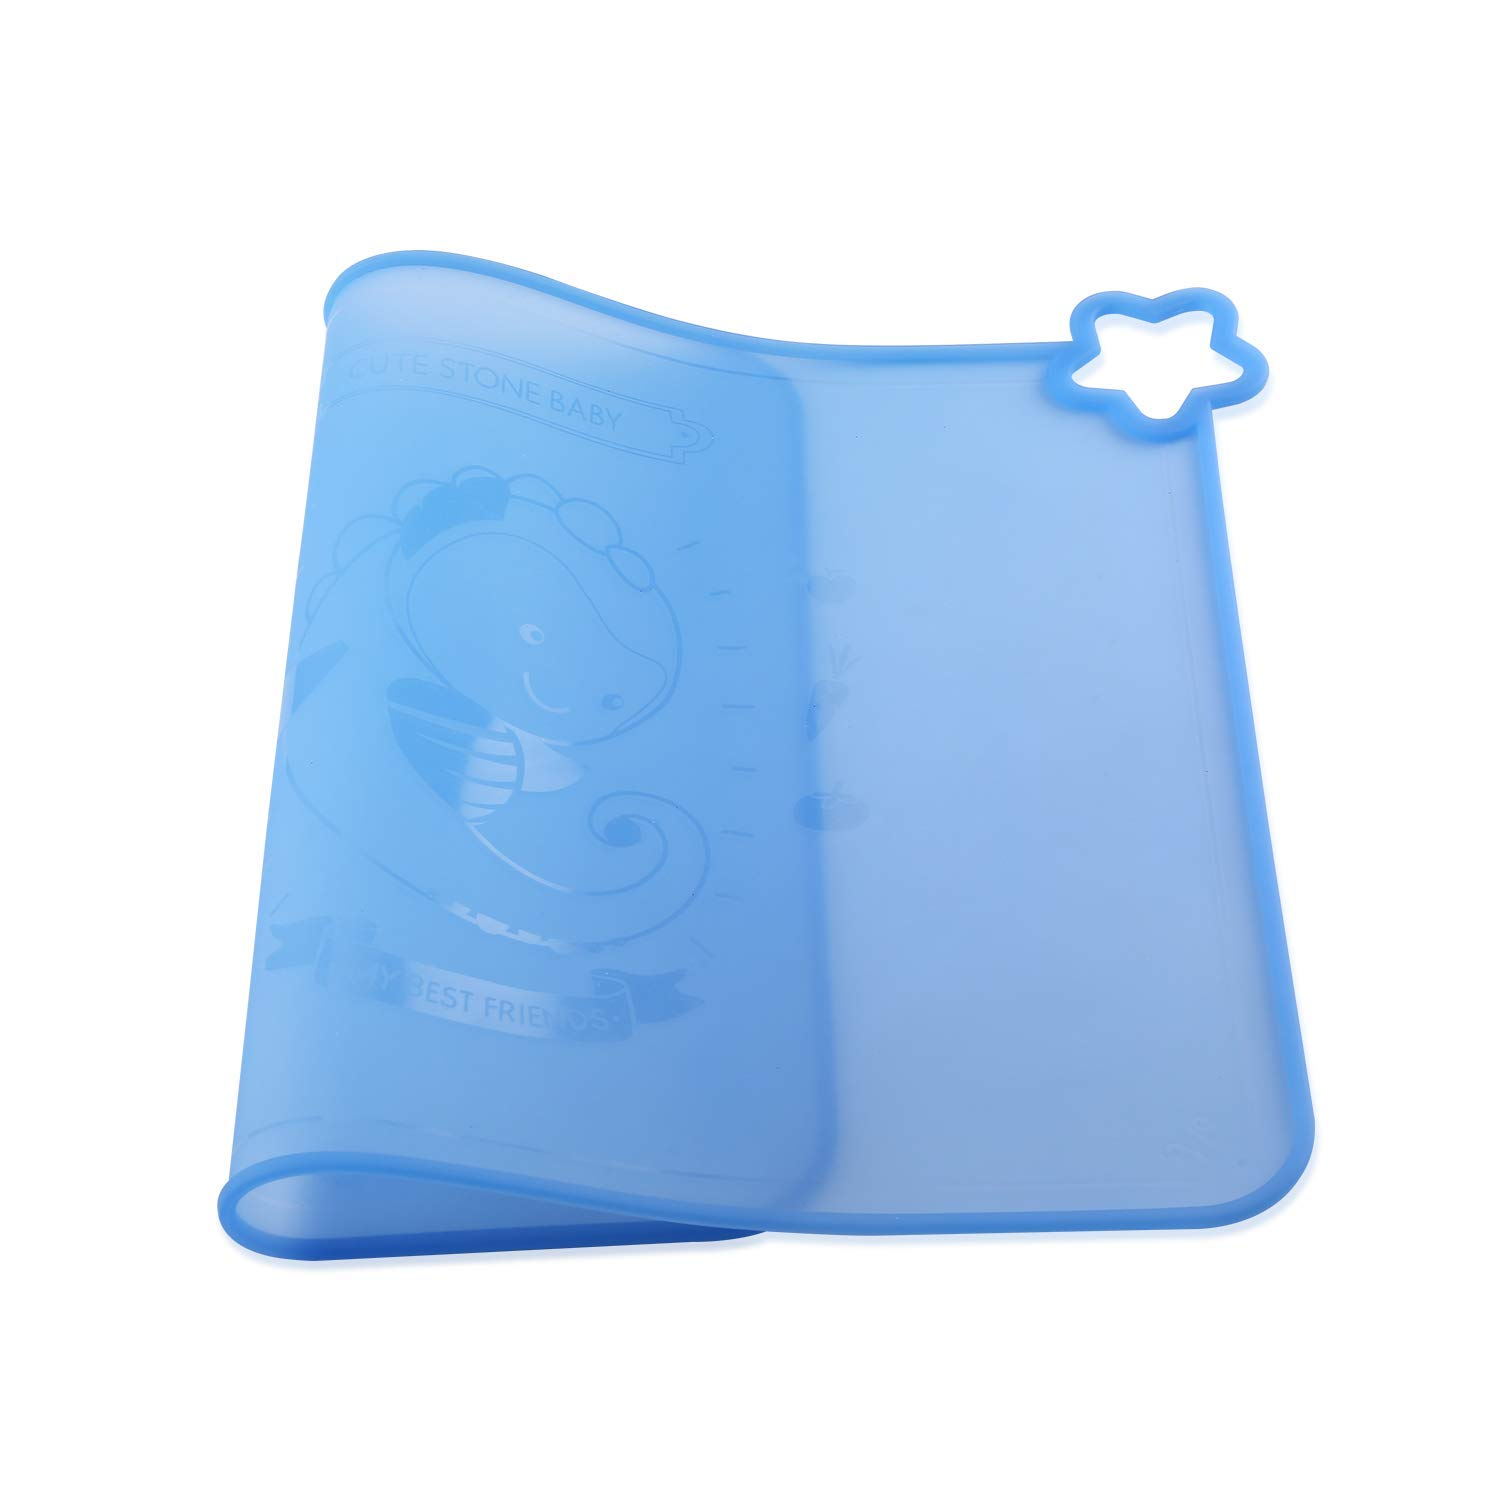 Silicone Baby Placemats for Children Kids Toddlers, Cute Stone Baby Placemats Travel with Raised Edge, Non Slip Surface, Waterproof, Portable, Easy to Clean, Dishwasher Safe, BPA Free, Blue